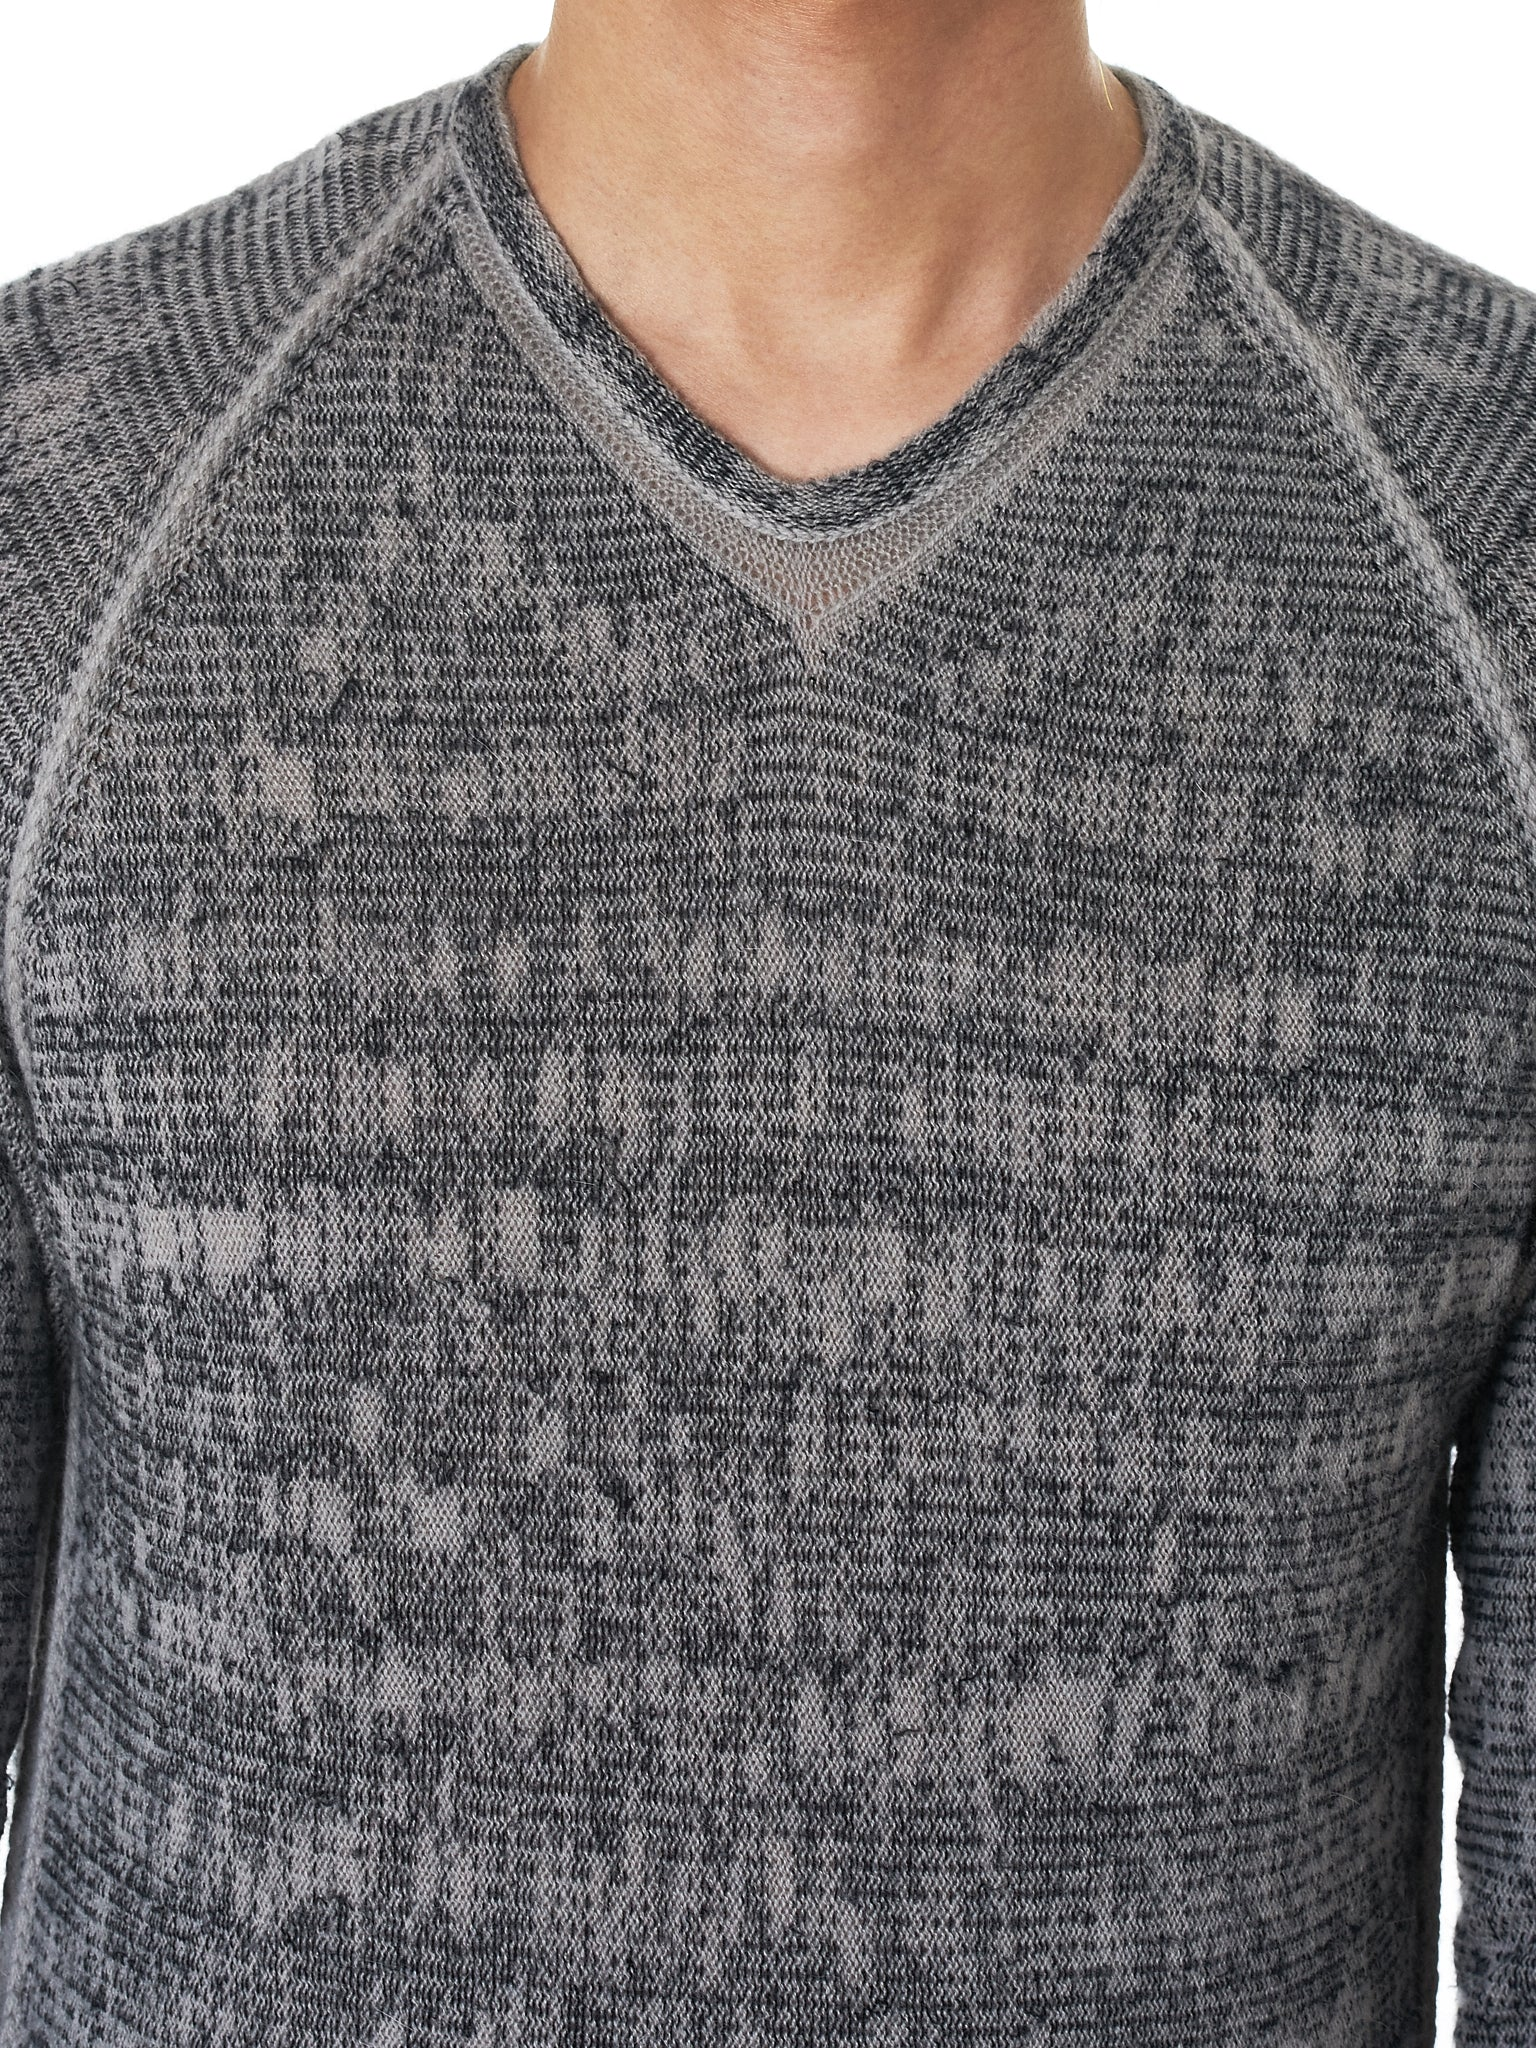 Label Under Construction Sweater - Hlorenzo Detail 3